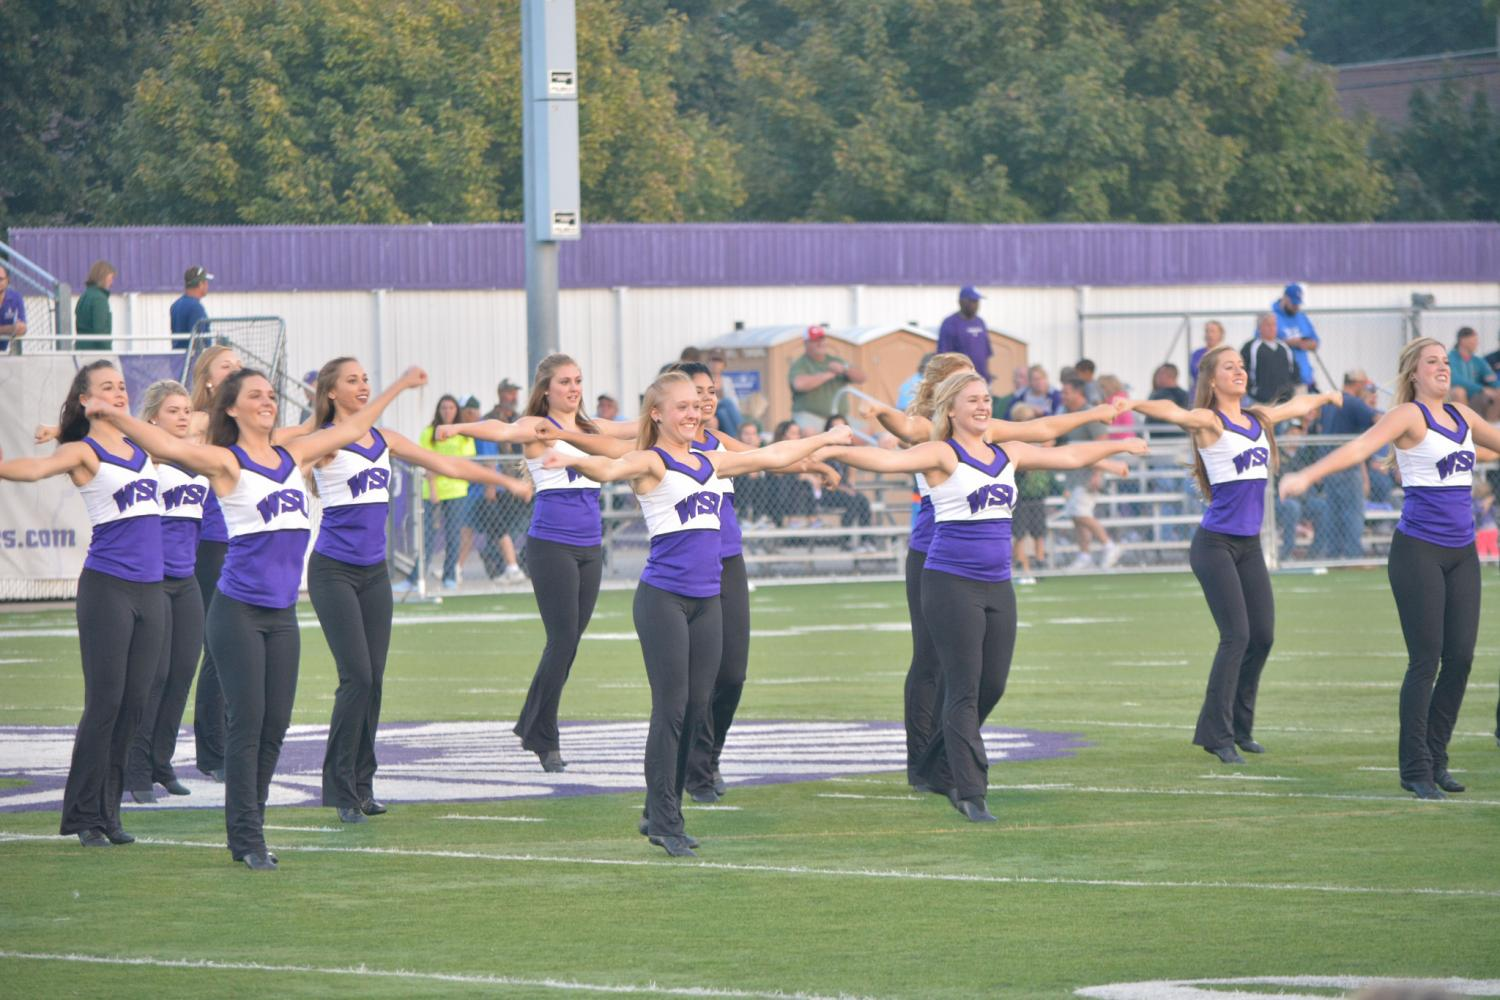 Winona+State+University%E2%80%99s+Dance+Team+performing+their+halftime+routine+at+the+football+game+last+Thursday%2C+Aug.+31+at+the+Altra+Federal+Credit+Union+Stadium.+The+Dance+Team+performs+halftime+shows+at+both+football+and+basketball+games%2C+and+competes+in+regional+competitions+throughout+Minnesota+and+Wisconsin.+The+team+placed+fourth+in+the+2016+NDA+National+Championships+in+Daytona+Beach%2C+FL+and+have+hopes+of+going+back+this+year.+